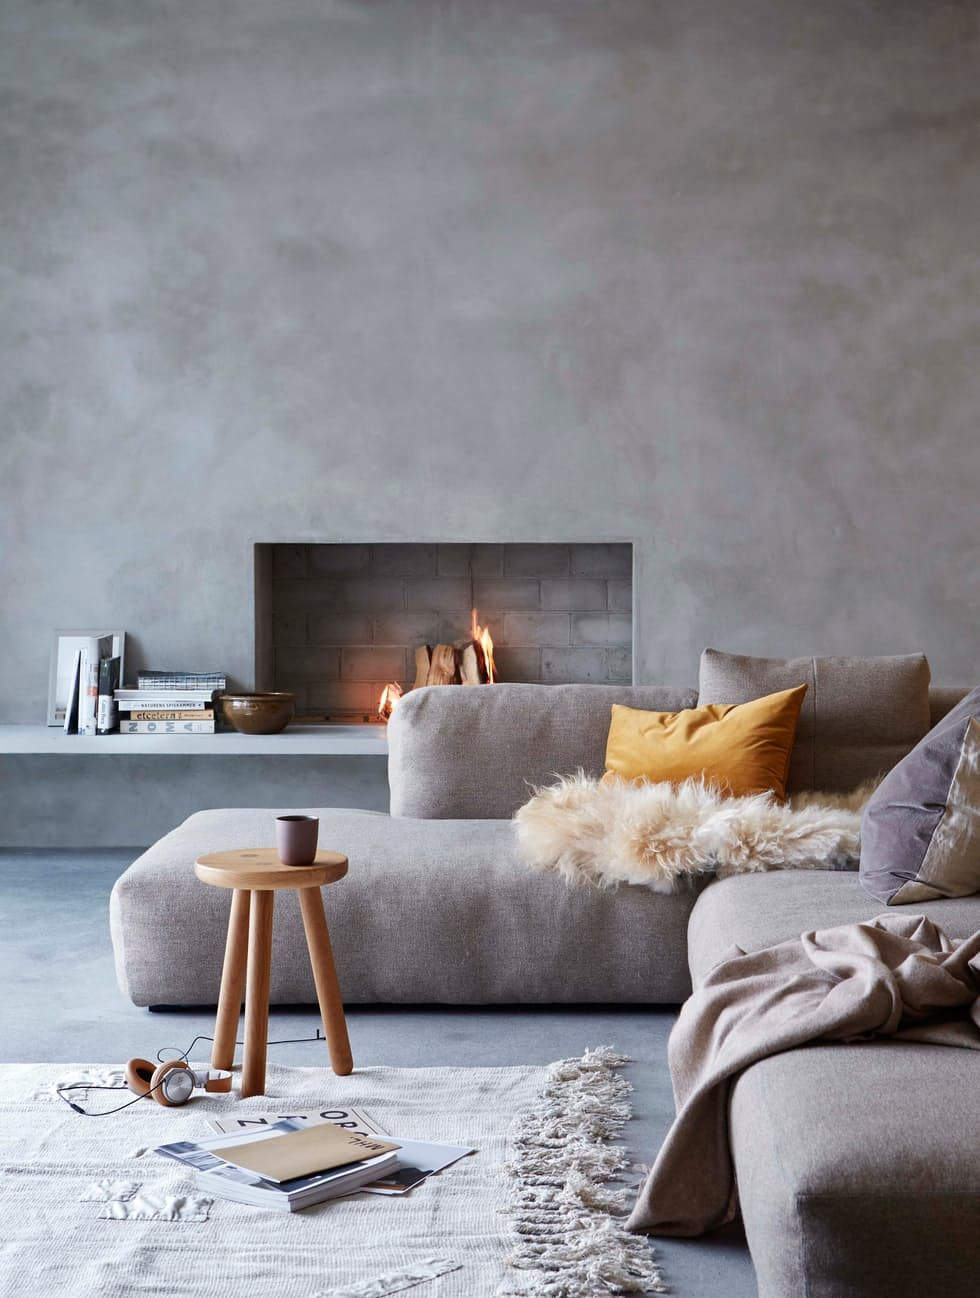 There Needs To Be An Art Piece Hanging Over That Fireplace Just Opinion But Still Love Interior MInimalism By LEUCHTEND GRAU